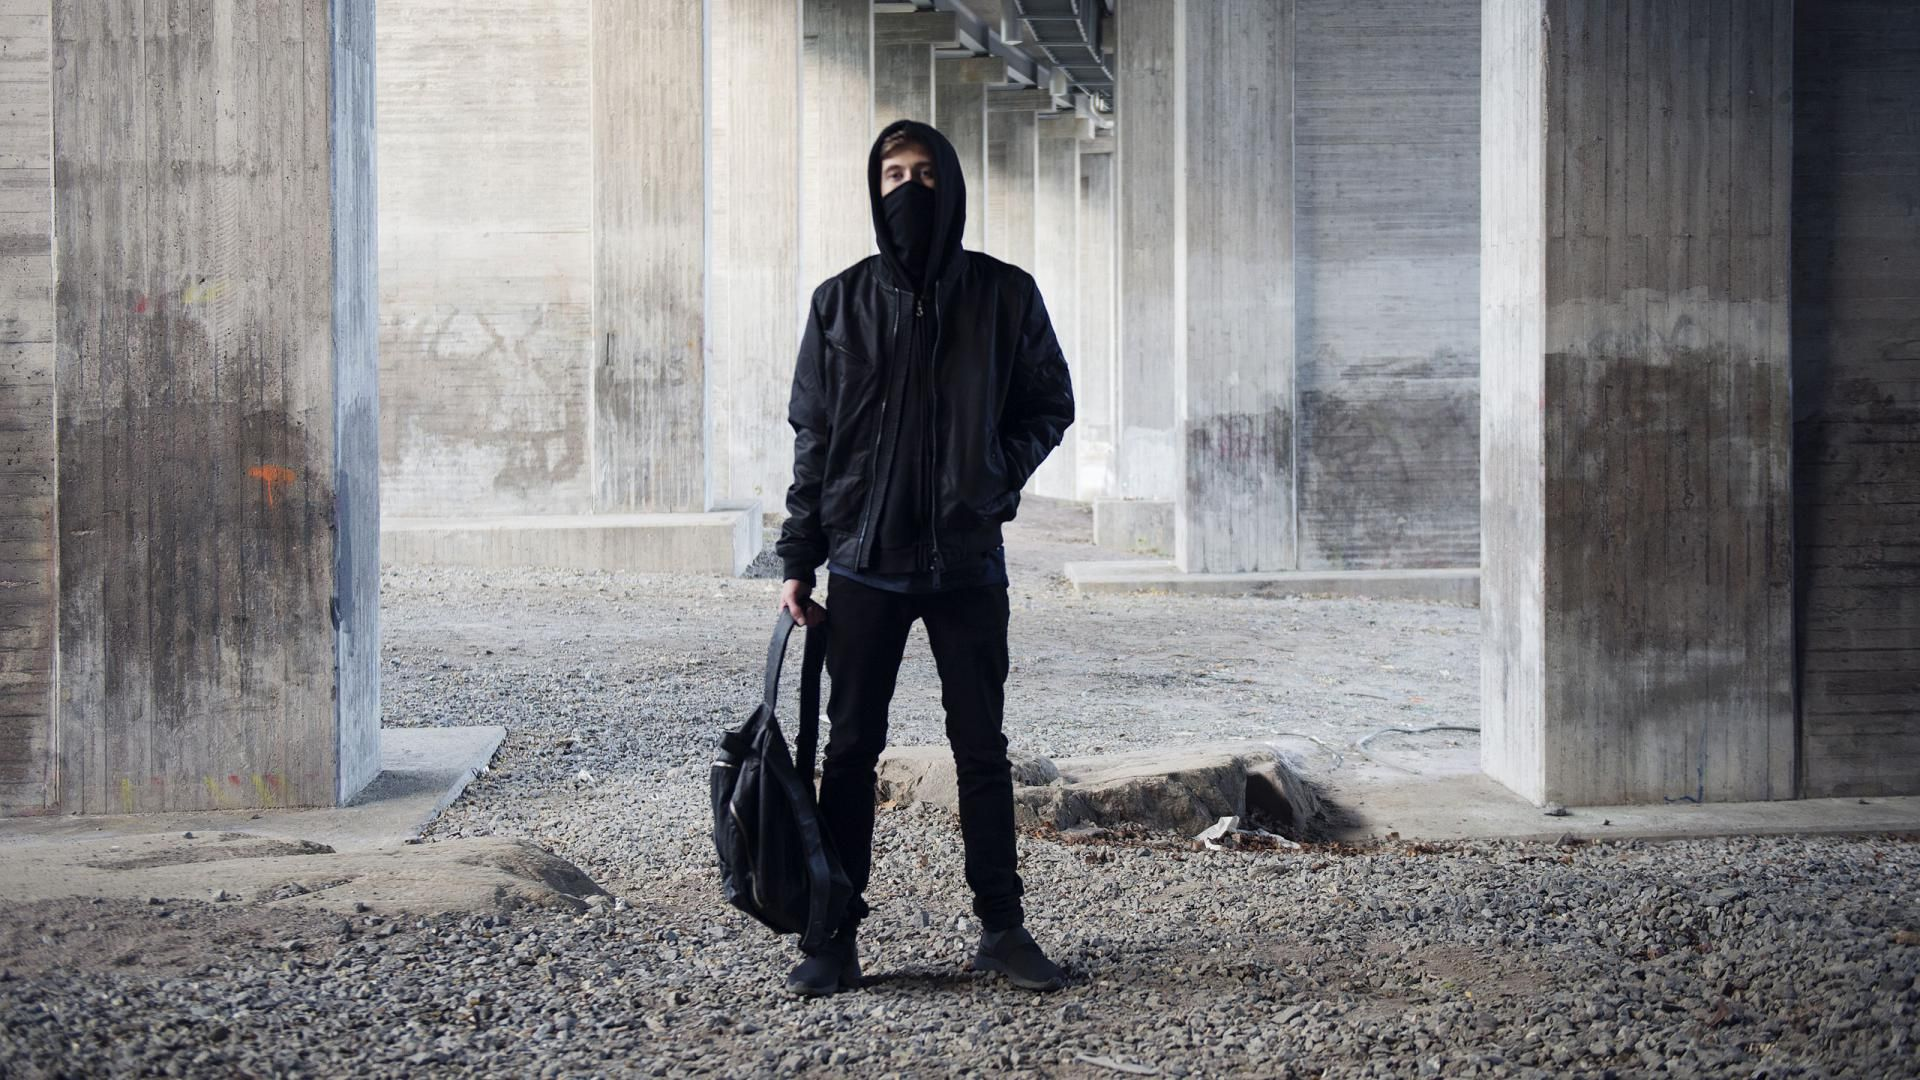 Wallpaper iphone alan walker - Alan Walker Face And Full Body Wallpaper Hd Wallpapers For Free